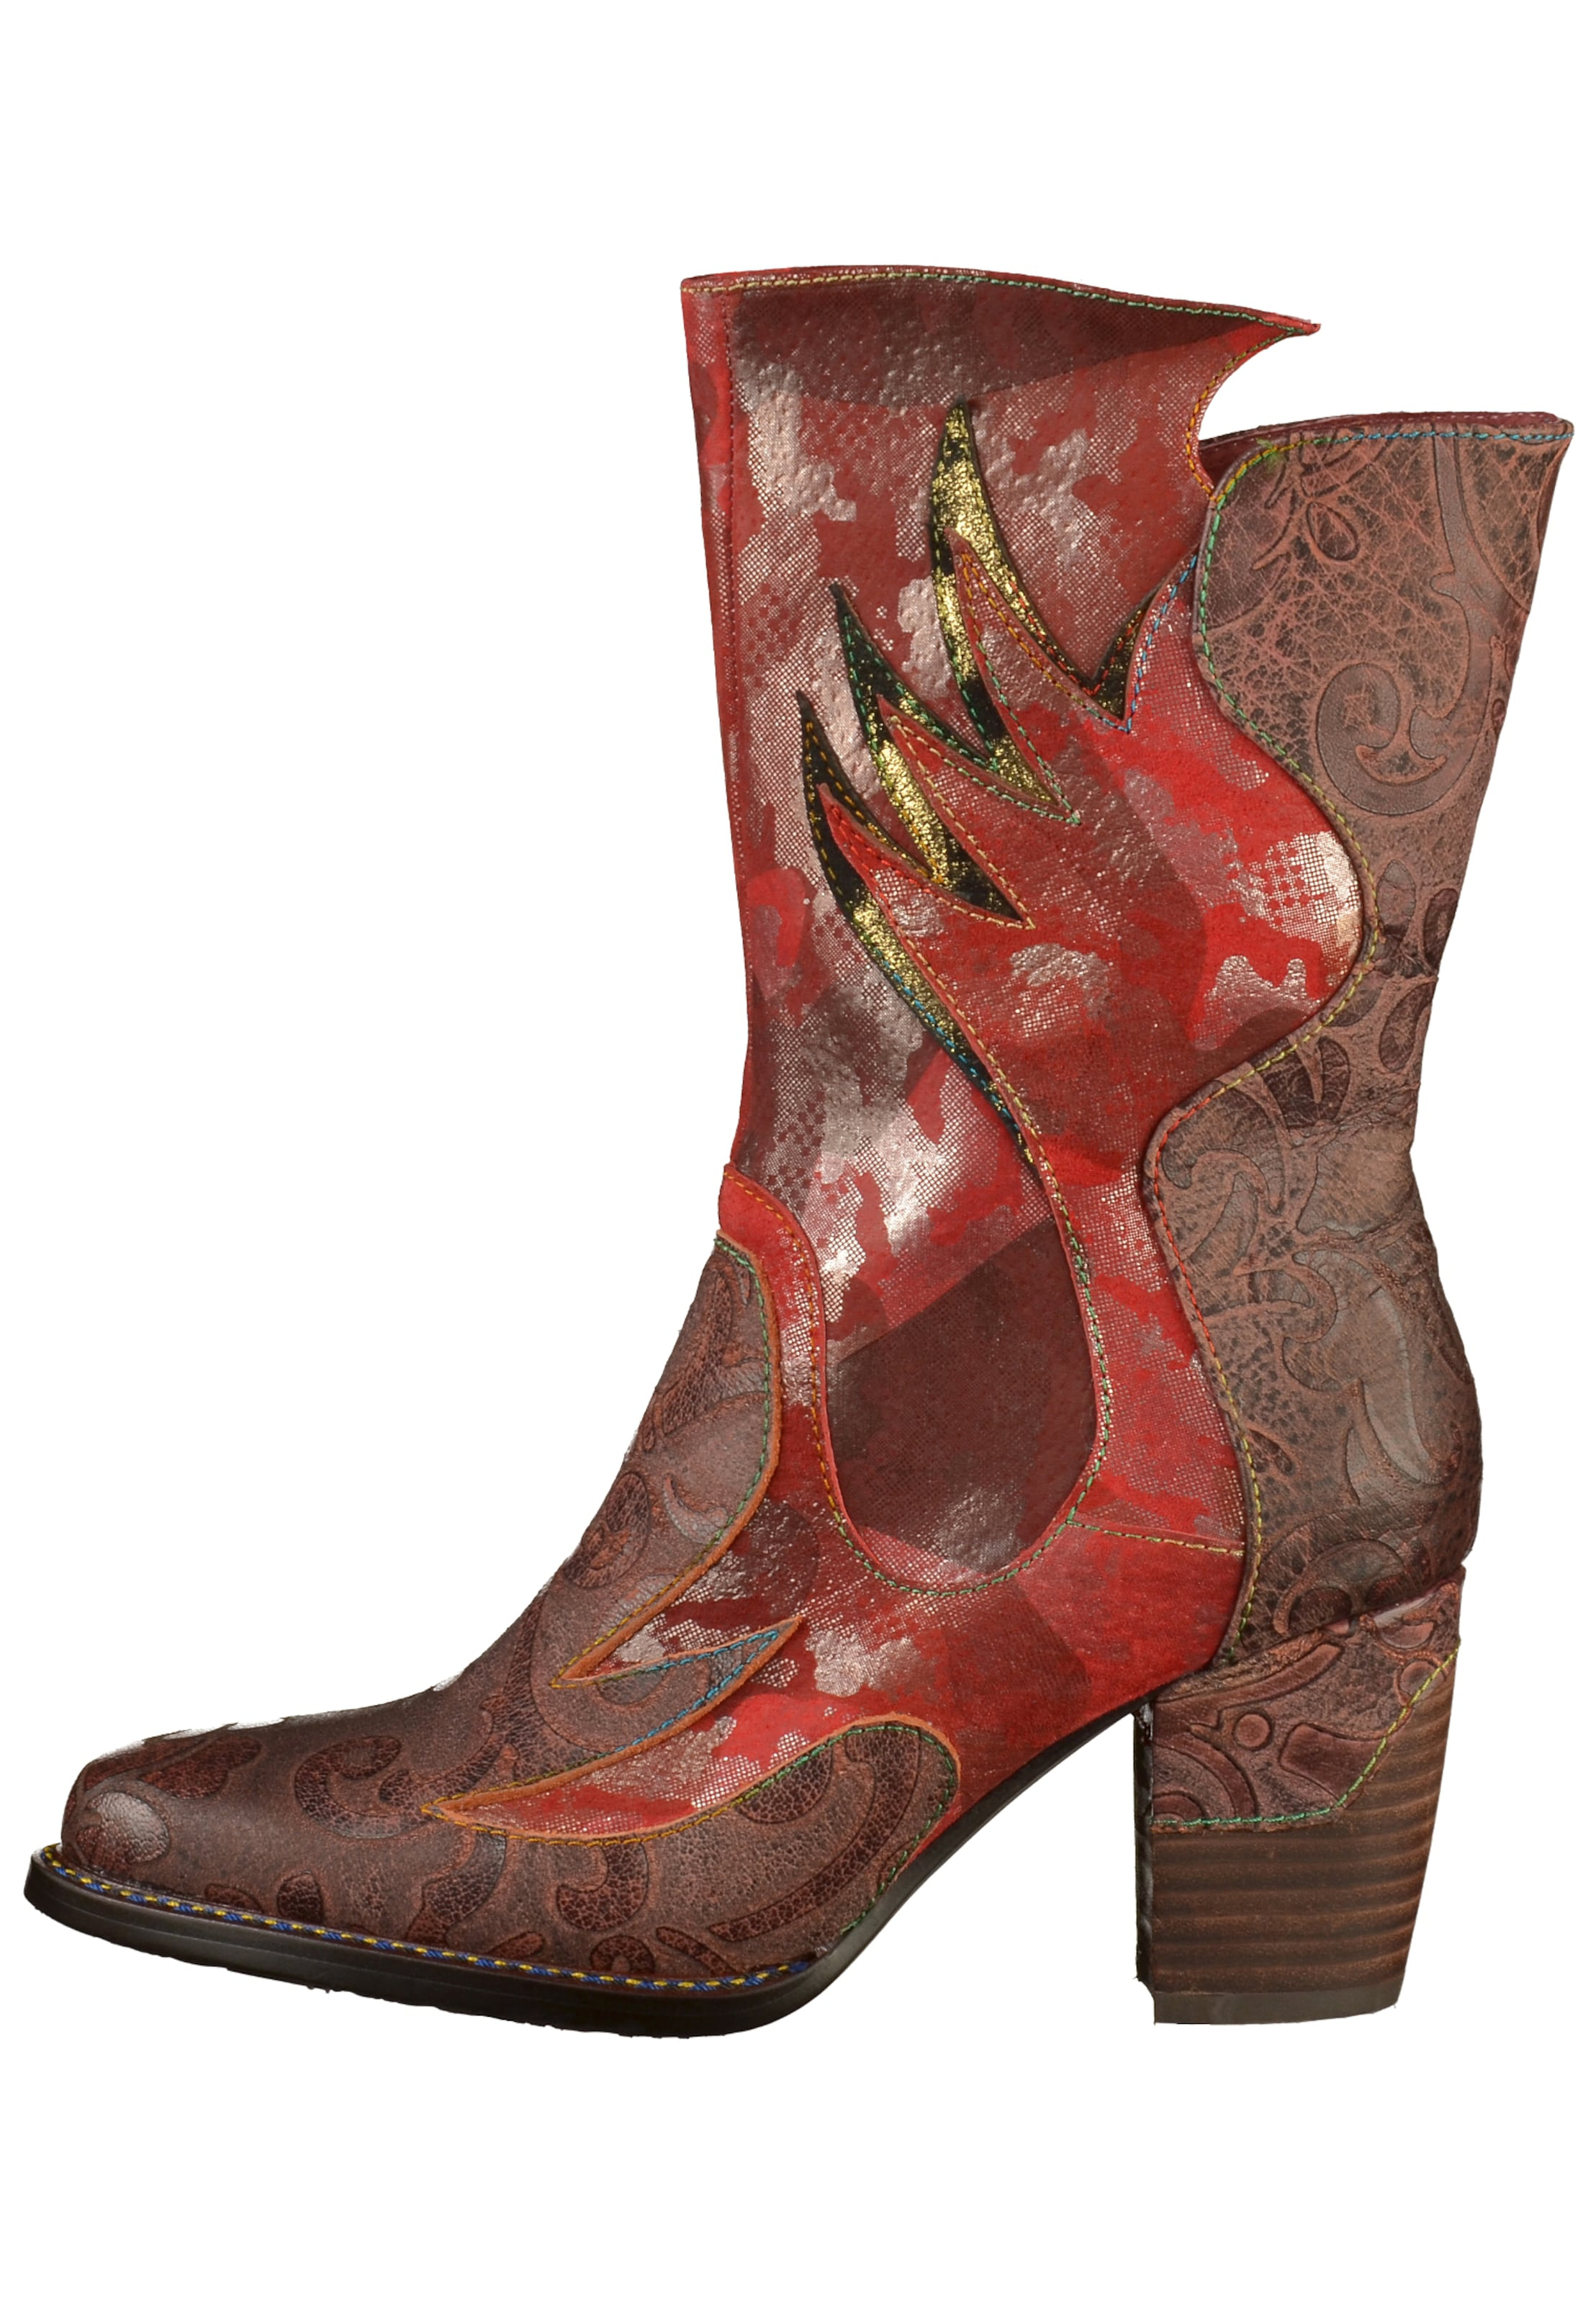 Stiefel Vita Laura GoldRot Stiefel In Vita In Laura GoldRot tCdxsQhrB